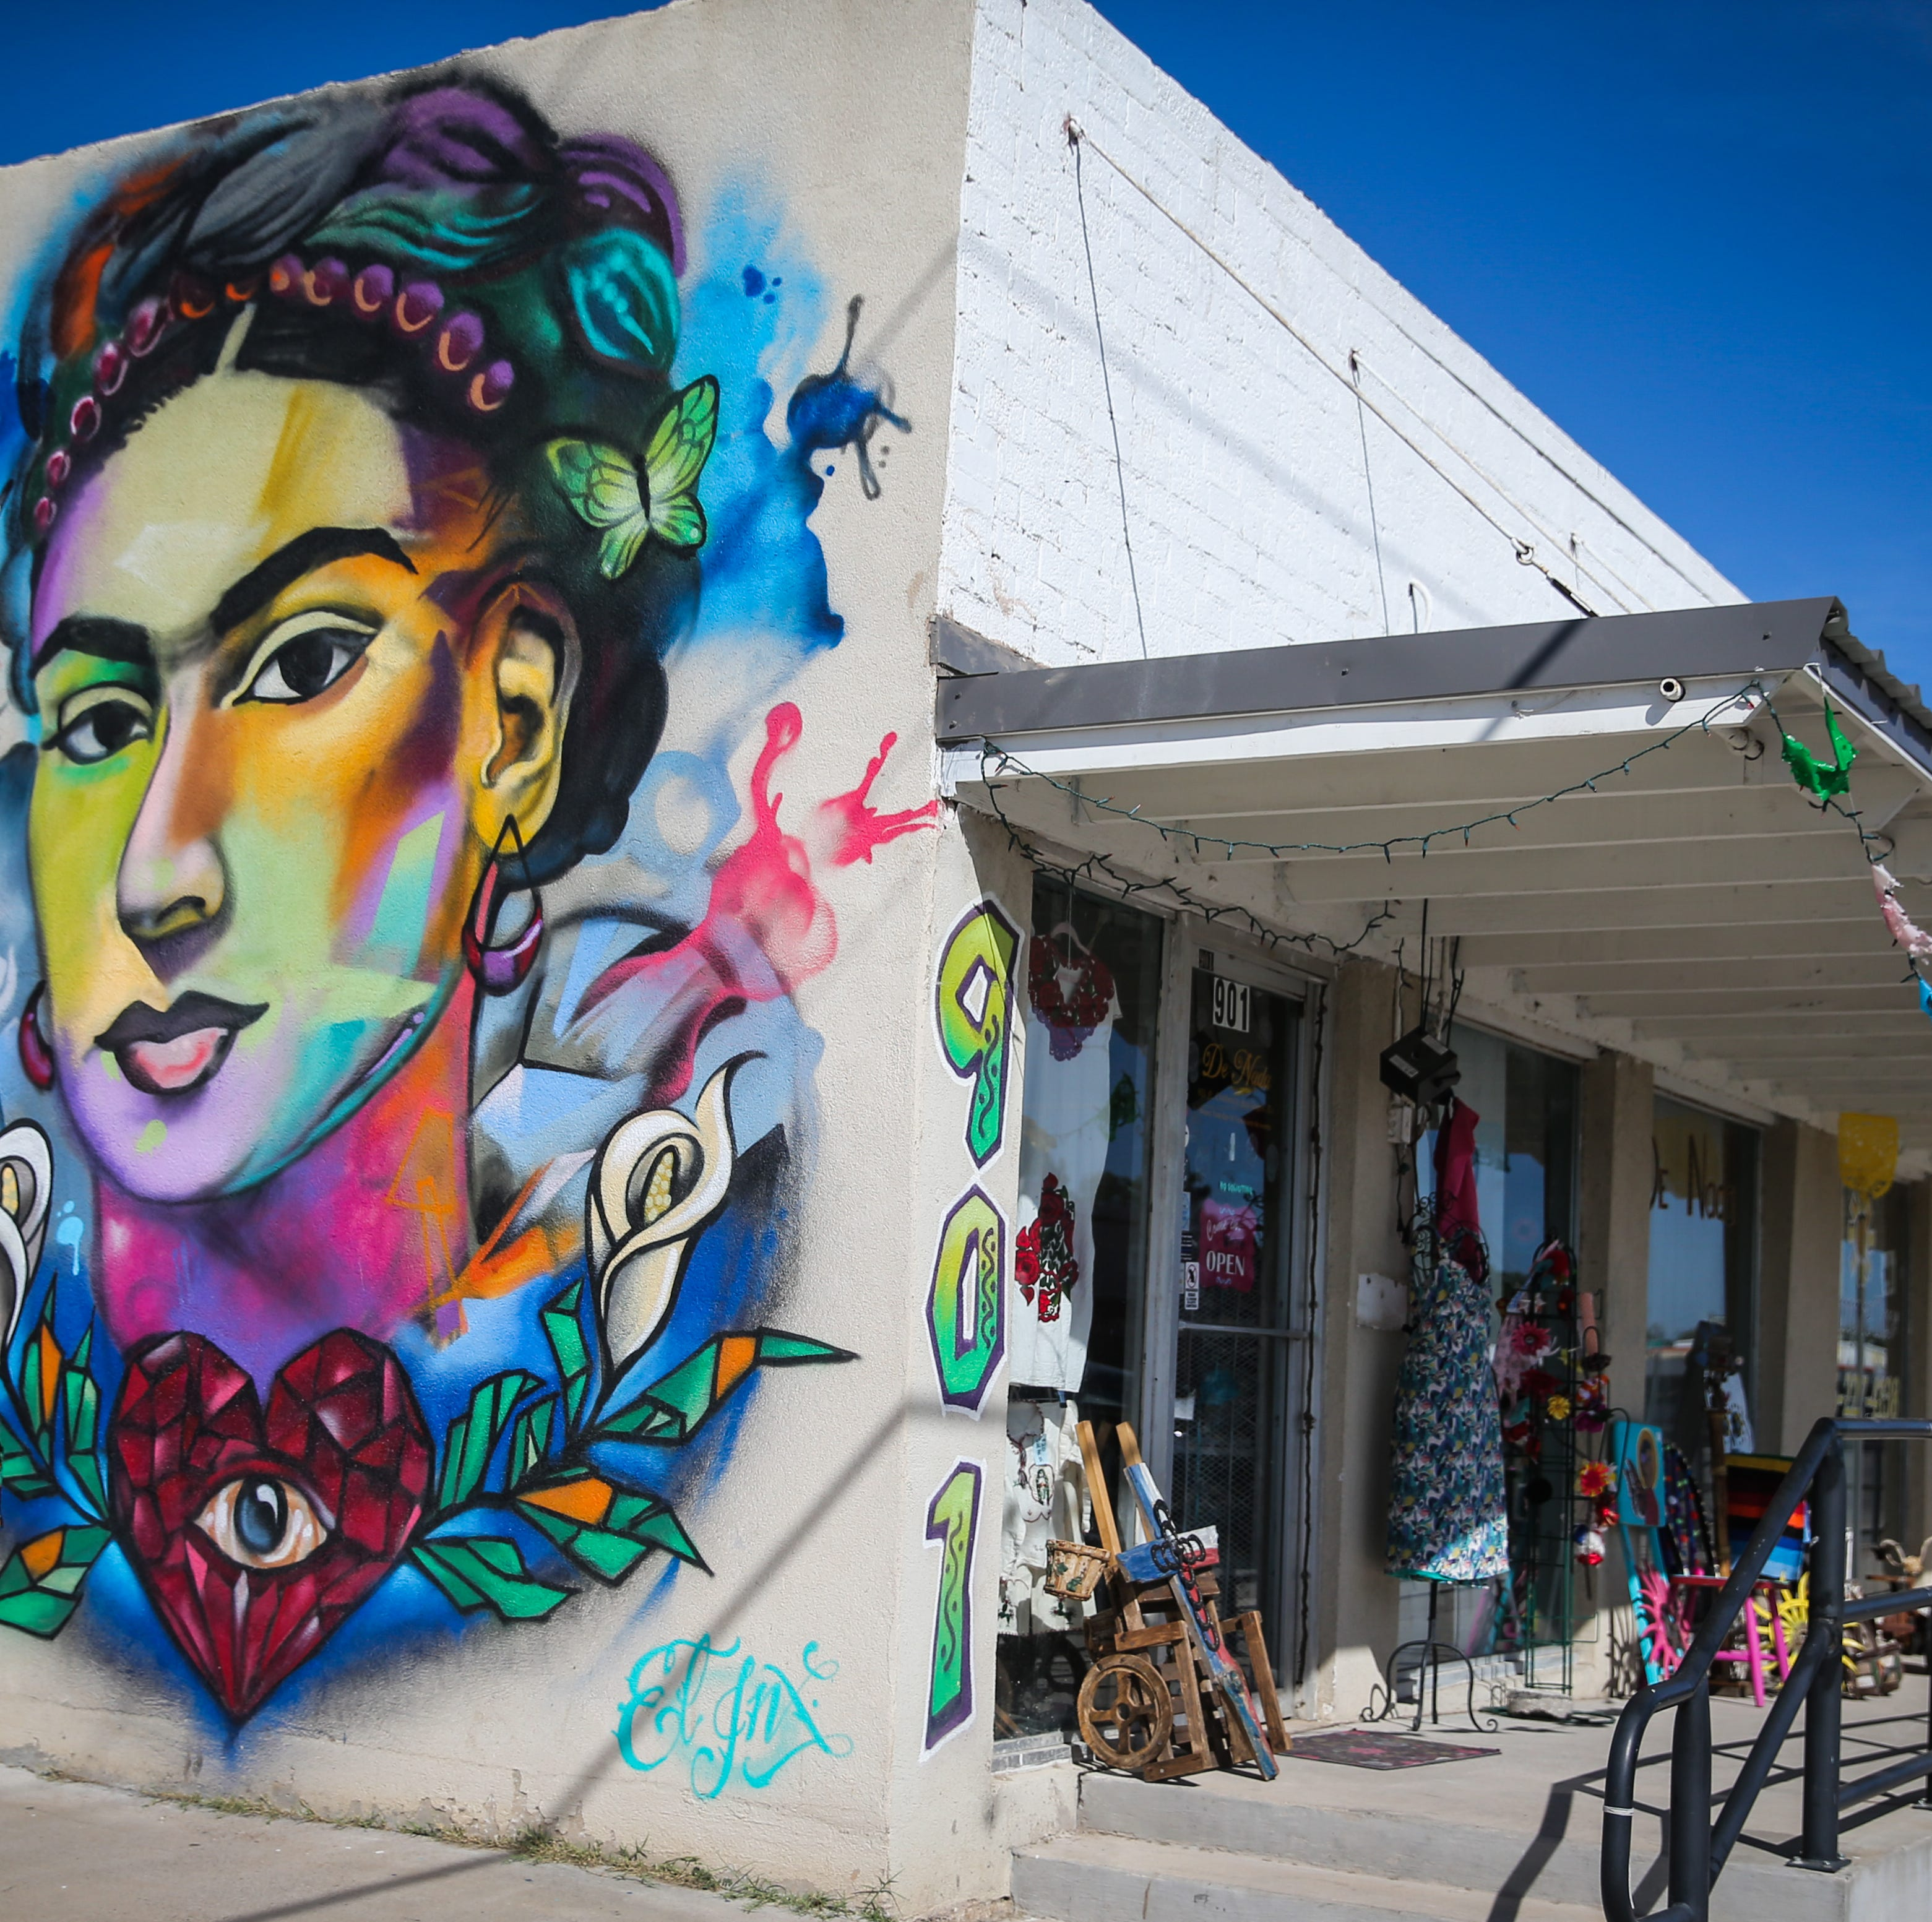 De Nada is San Angelo's one-stop shop for hair, clothes, music, art and more